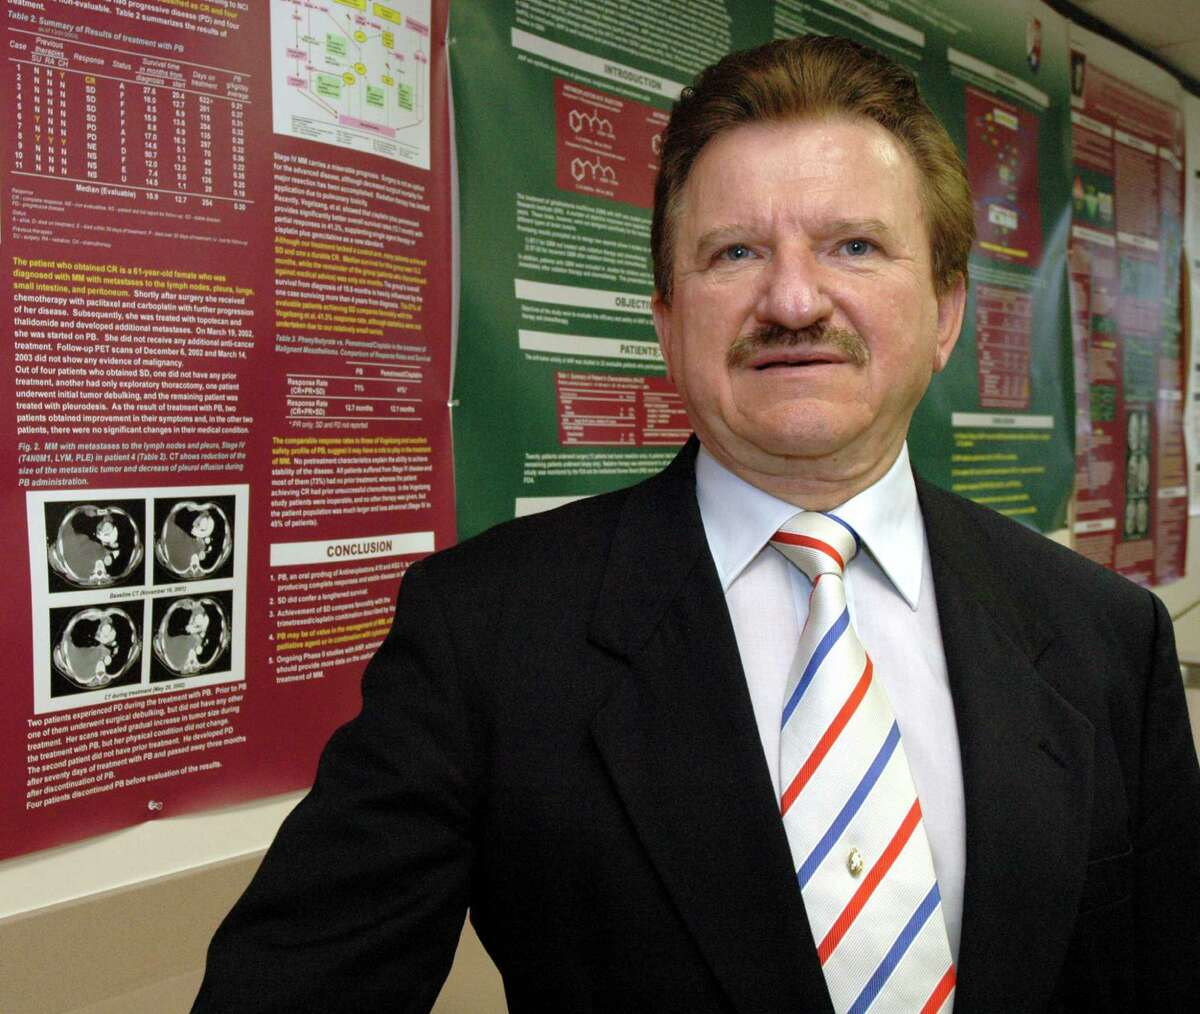 Dr. Burzynski, photographed in his clinic library, has been a controversial doctor who at one time was at heads with the FDA and now is working closely with them for government approval of his non-toxic antineoplaston drug therapy, May 12, 2005. Special to the Chronicle/Meenu Bhardwaj